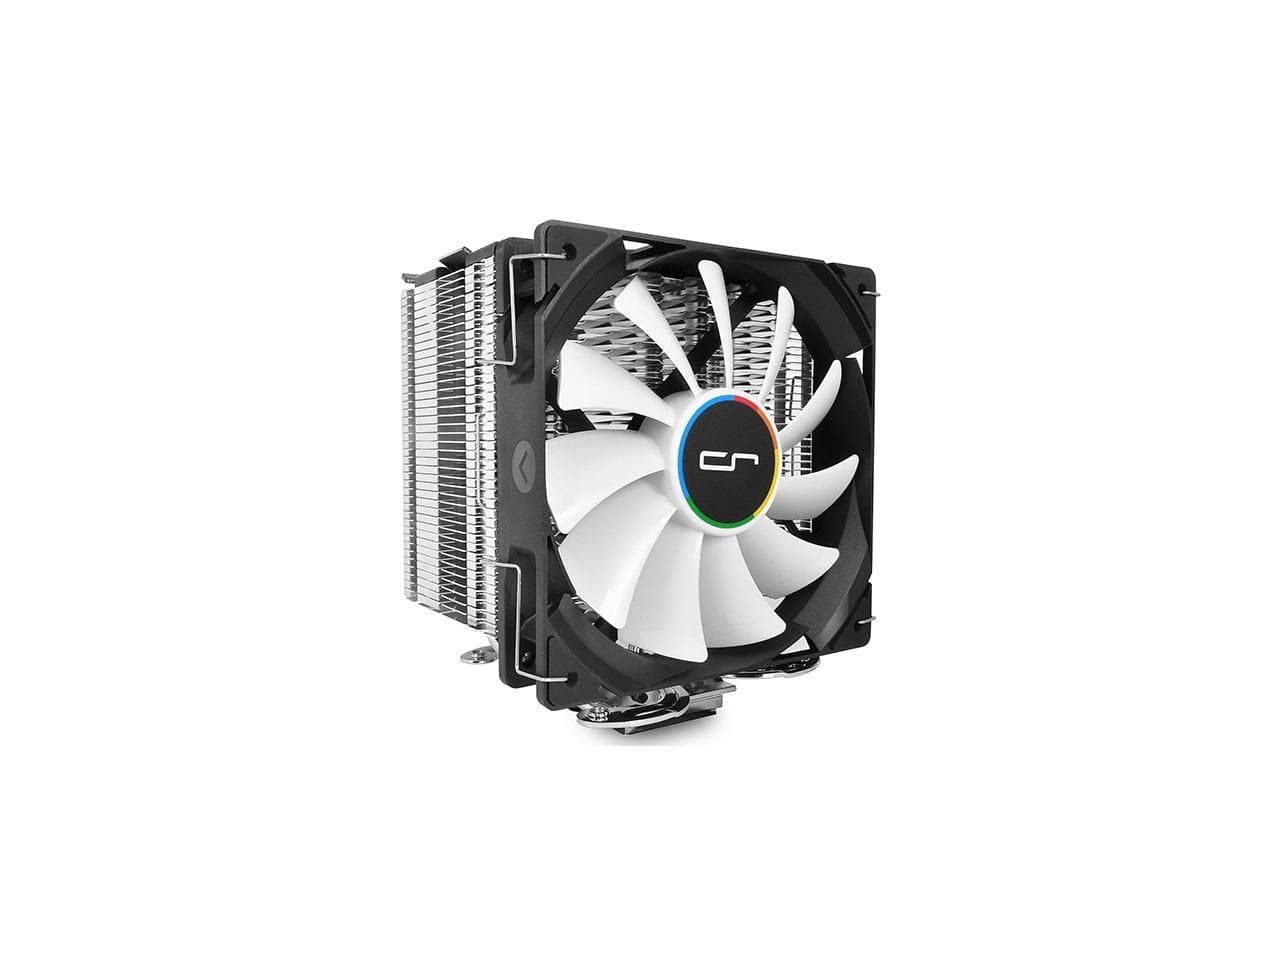 CRYORIG H7 Tower Cooler For AMD/Intel CPU's $27.99